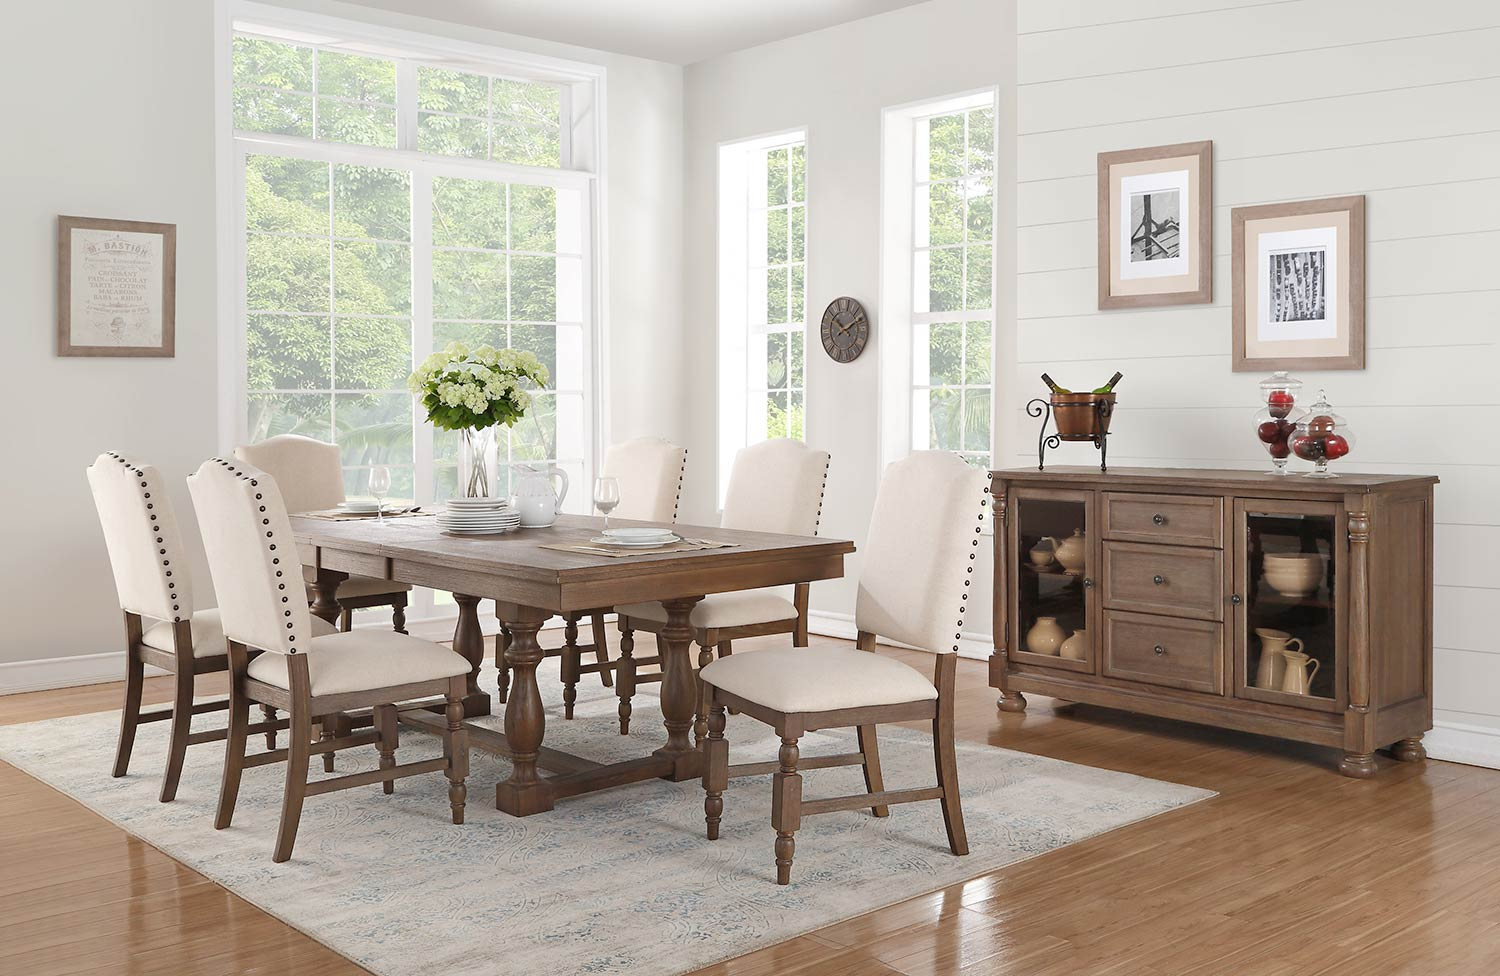 Homelegance Chartreaux Dining Set - Natural Taupe - Oak veneer